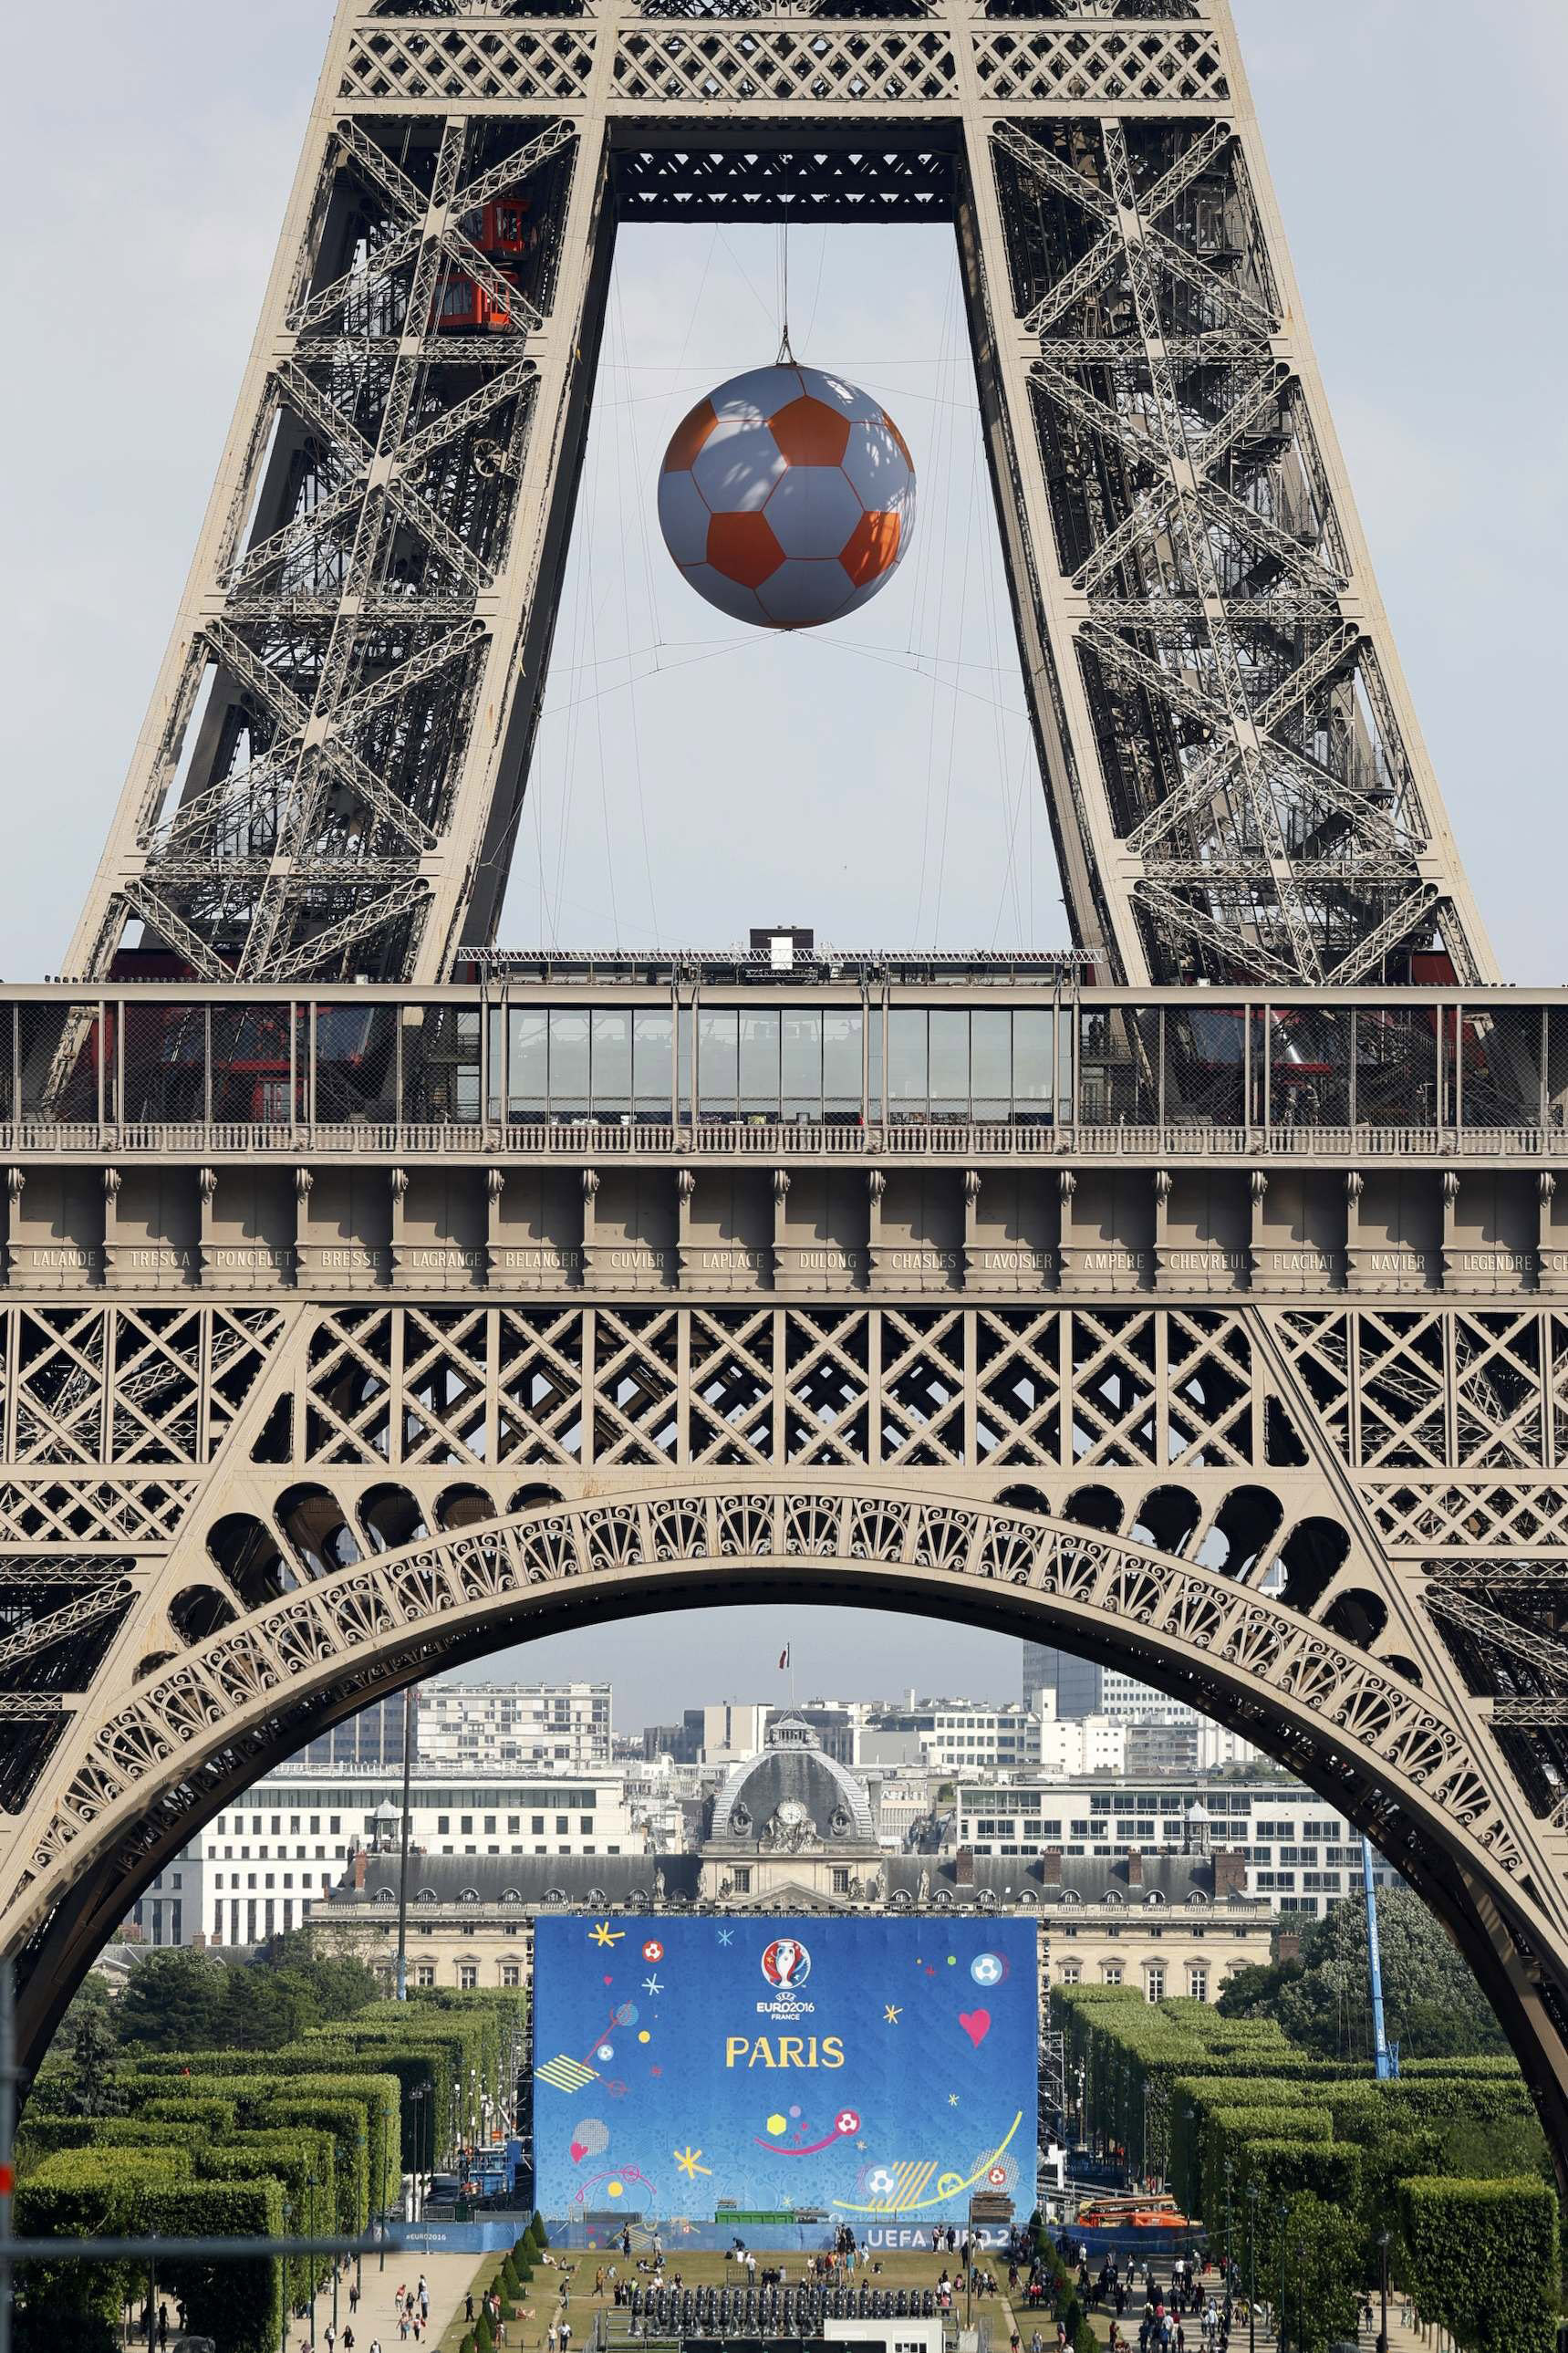 Fan zone at the Champs de Mars under the Eiffel Tower ahead of the UEFA 2016 European Championship in Paris,  June 7, 2016.